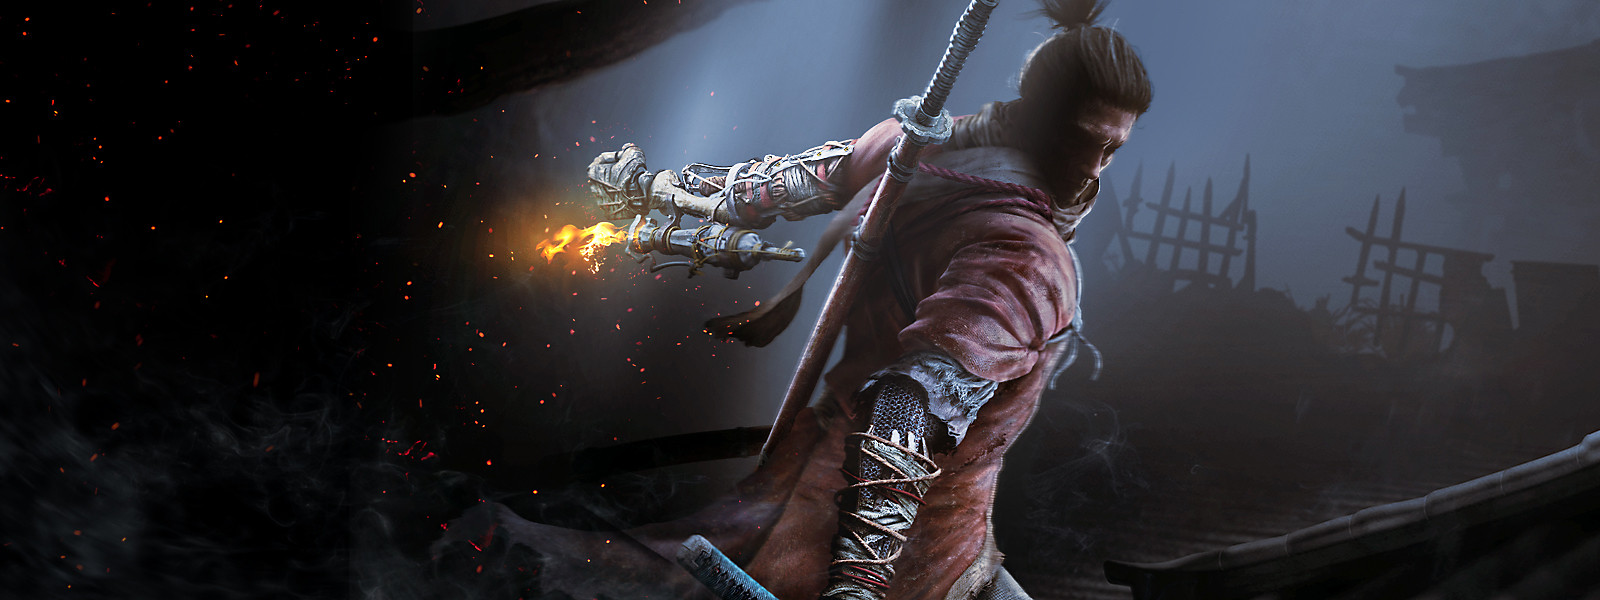 Sekiro Shadows Die Twice Wallpaper 4k Iphone Android And